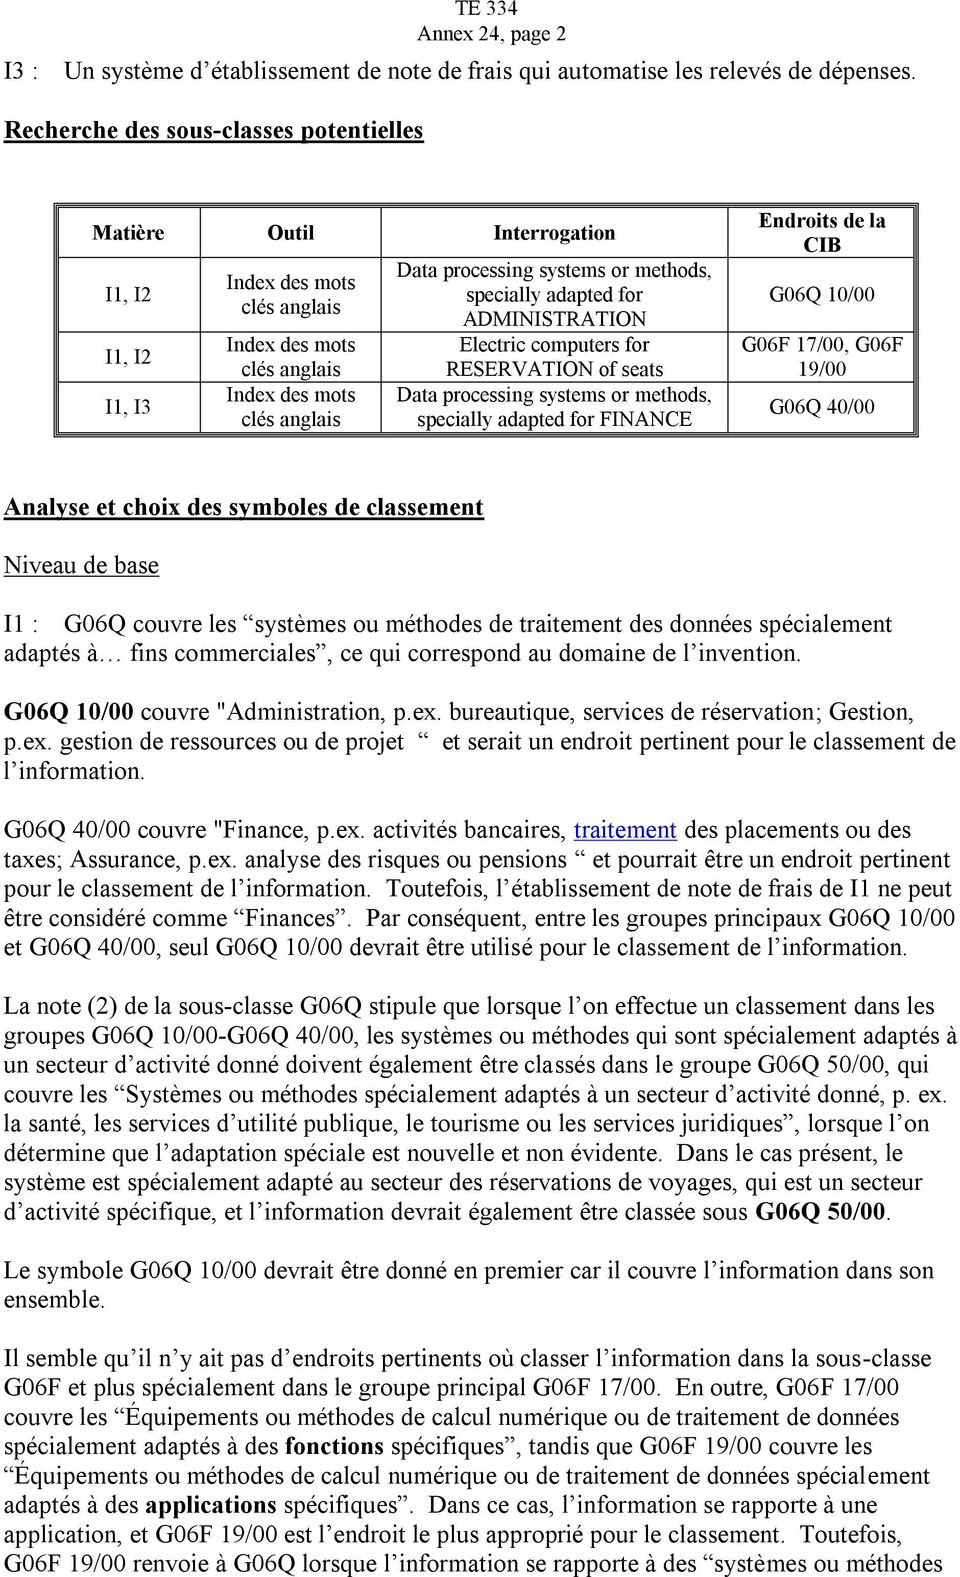 seats Data processing systems or methods, specially adapted for FINANCE Endroits de la CIB G06F 17/00, G06F 19/00 G06Q 40/00 Analyse et choix des symboles de classement Niveau de base I1 : G06Q